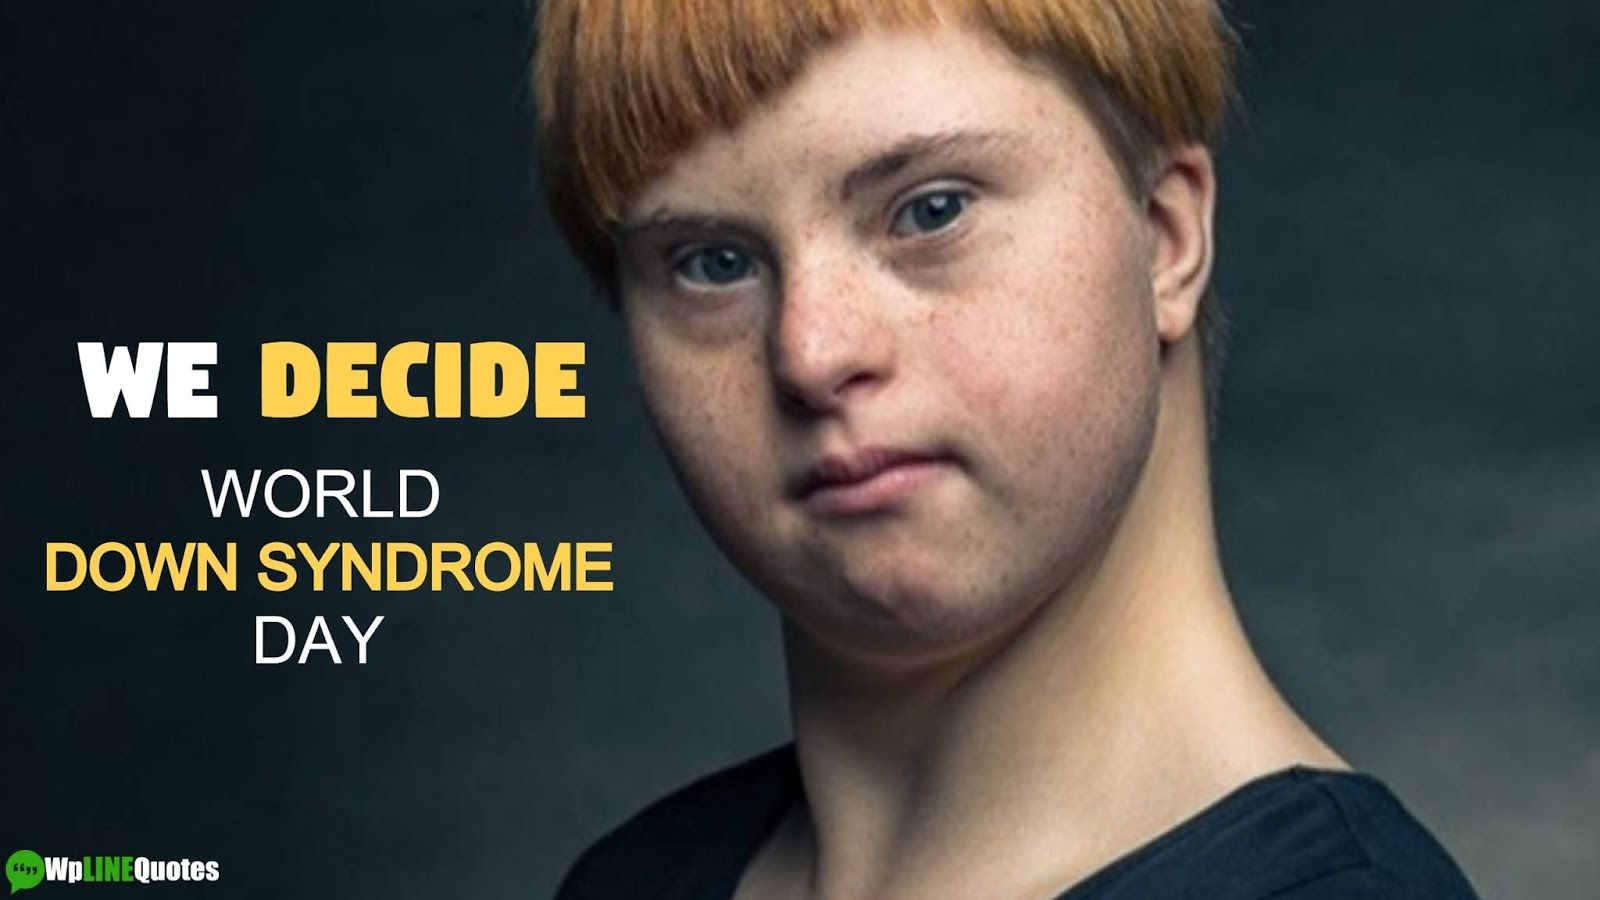 World Down Syndrome Day Quotes, Messages, Theme, Meaning, Activities, Ideas, Images, Posters